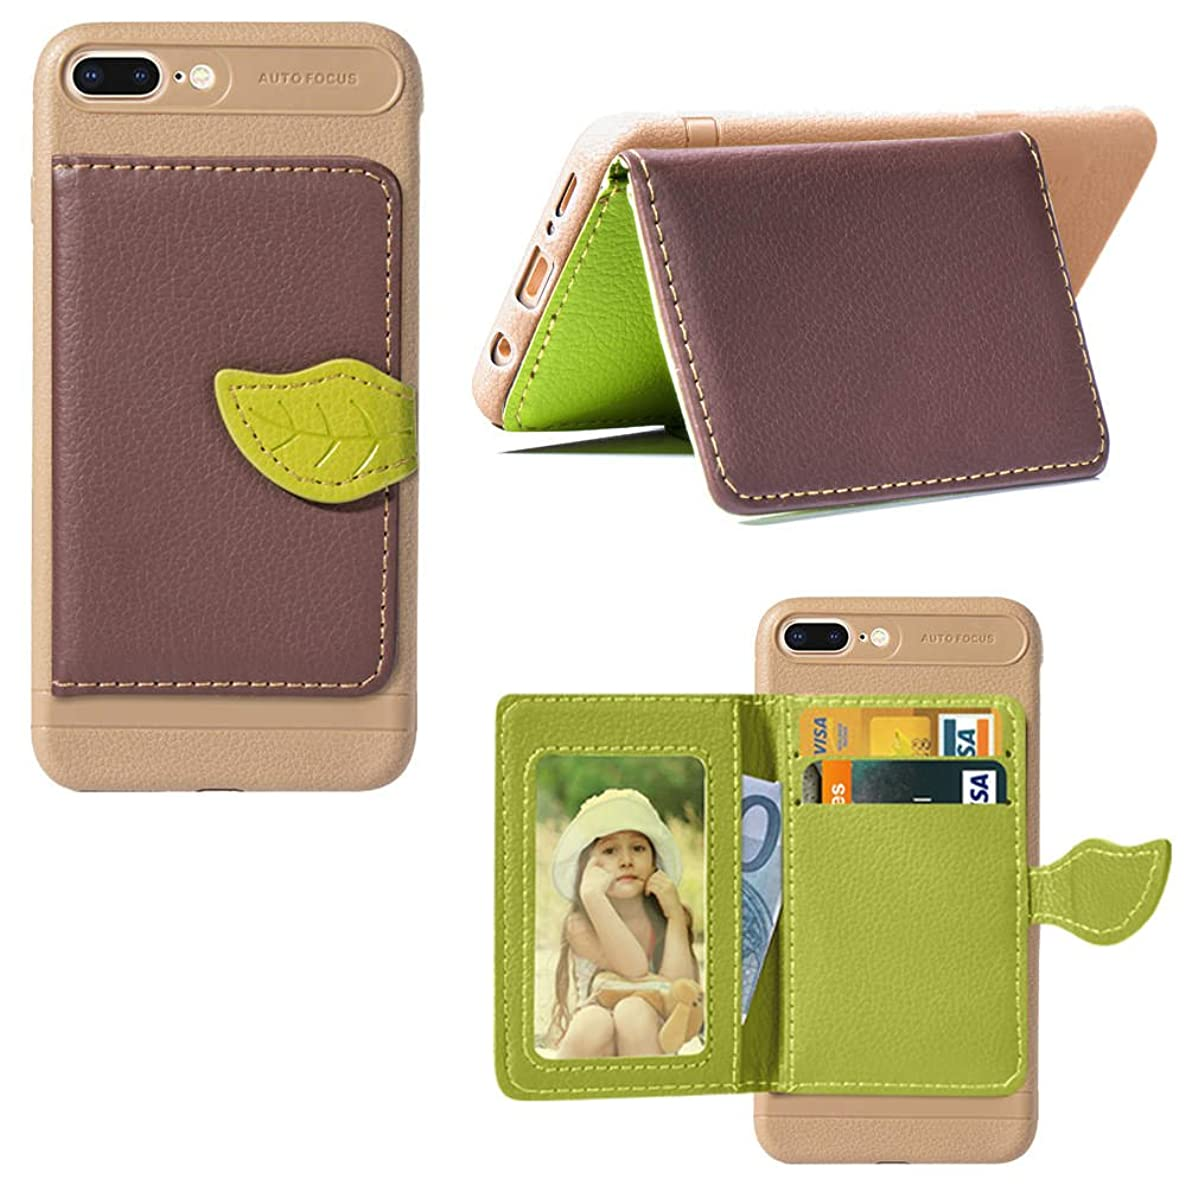 iPhone 7 Plus iPhone 8 Plus Case, PU Leather Wallet Case Flip Kickstand Function Ultra Folio Flip Slim Card Holder Case Cover Falling for iPhone 7 Plus iPhone 8 Plus (Brown)